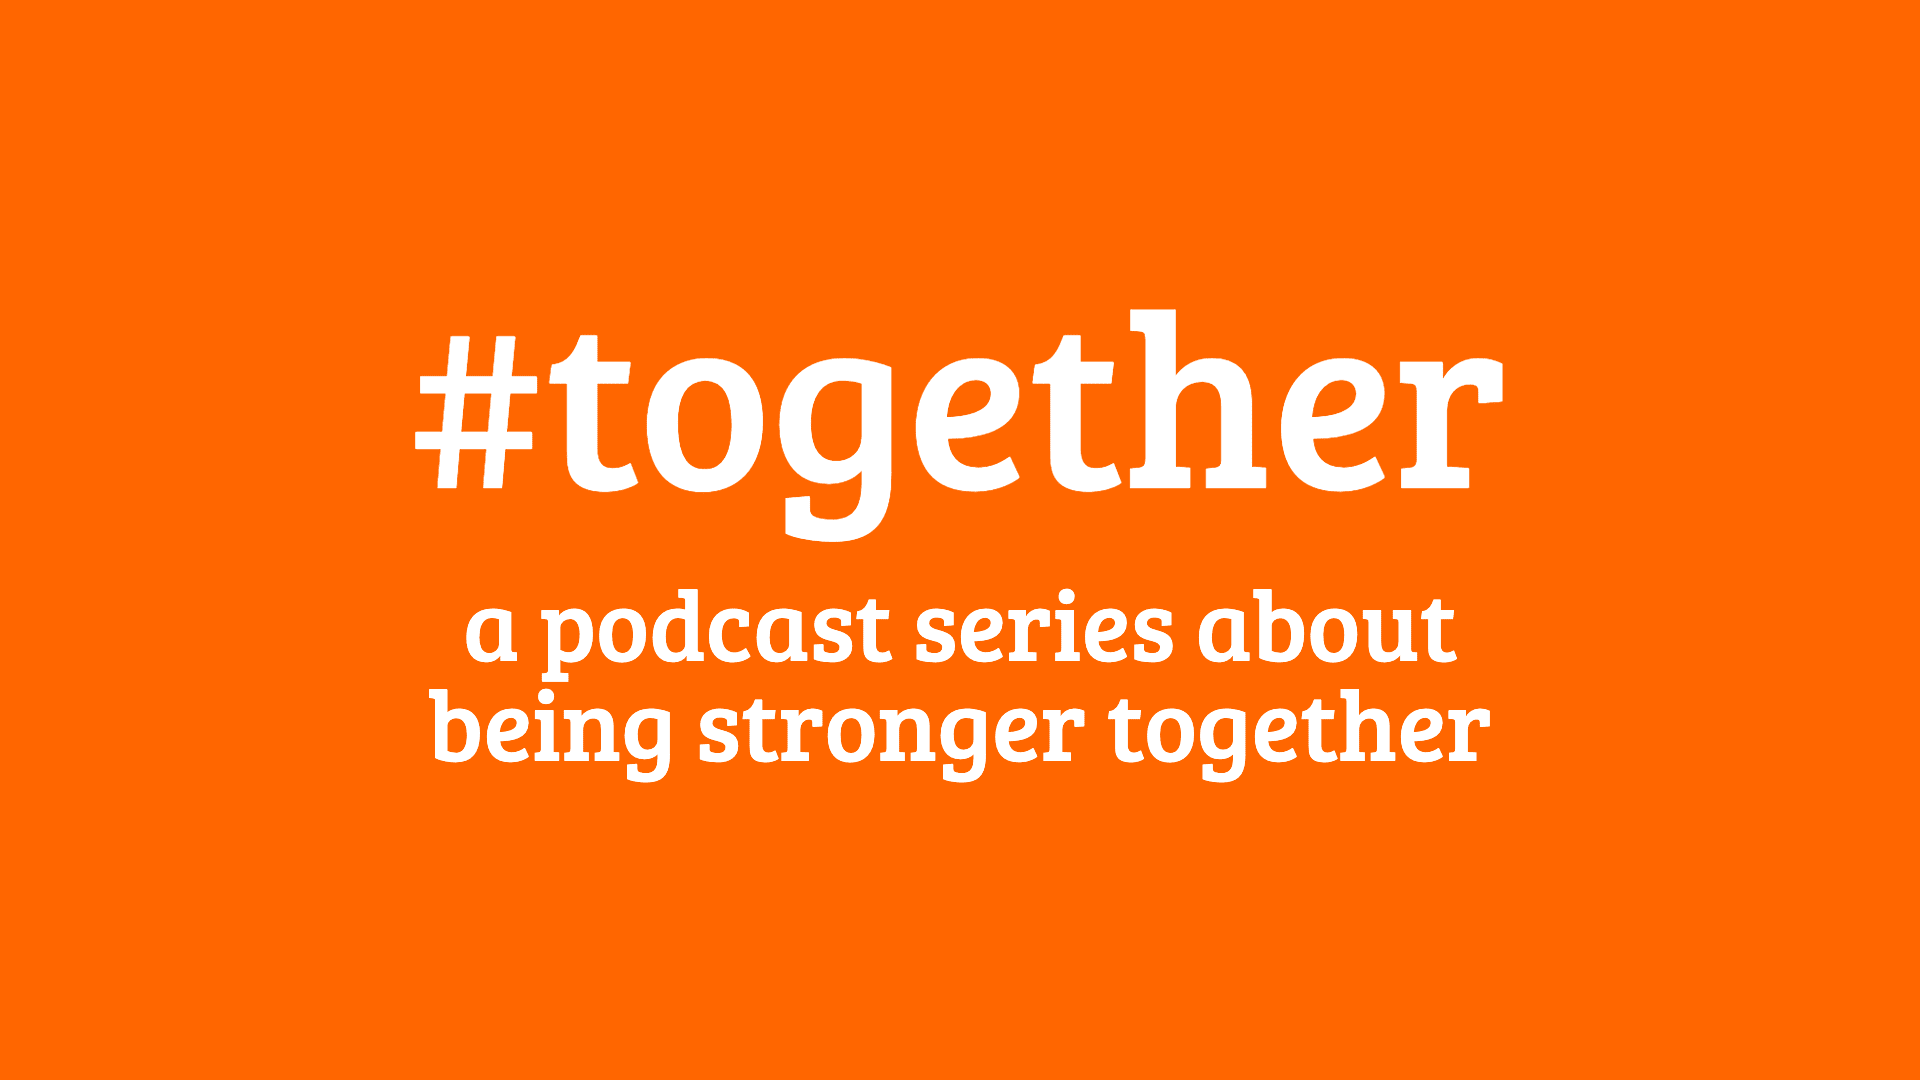 #together podcast series